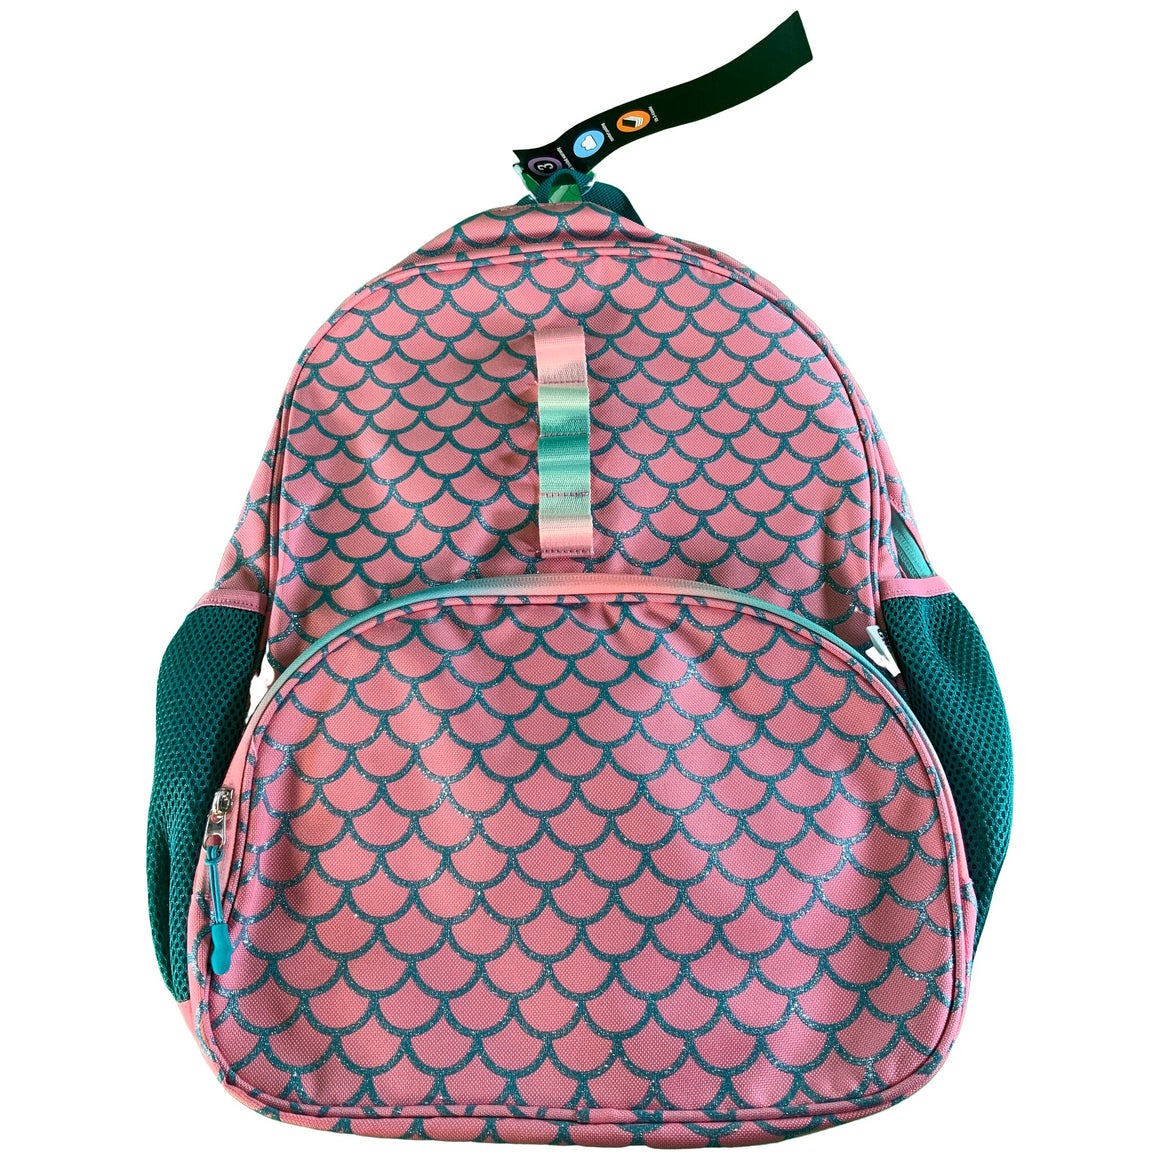 "16.25"" Kids' Backpack - Mermaid Scale - Crckt"